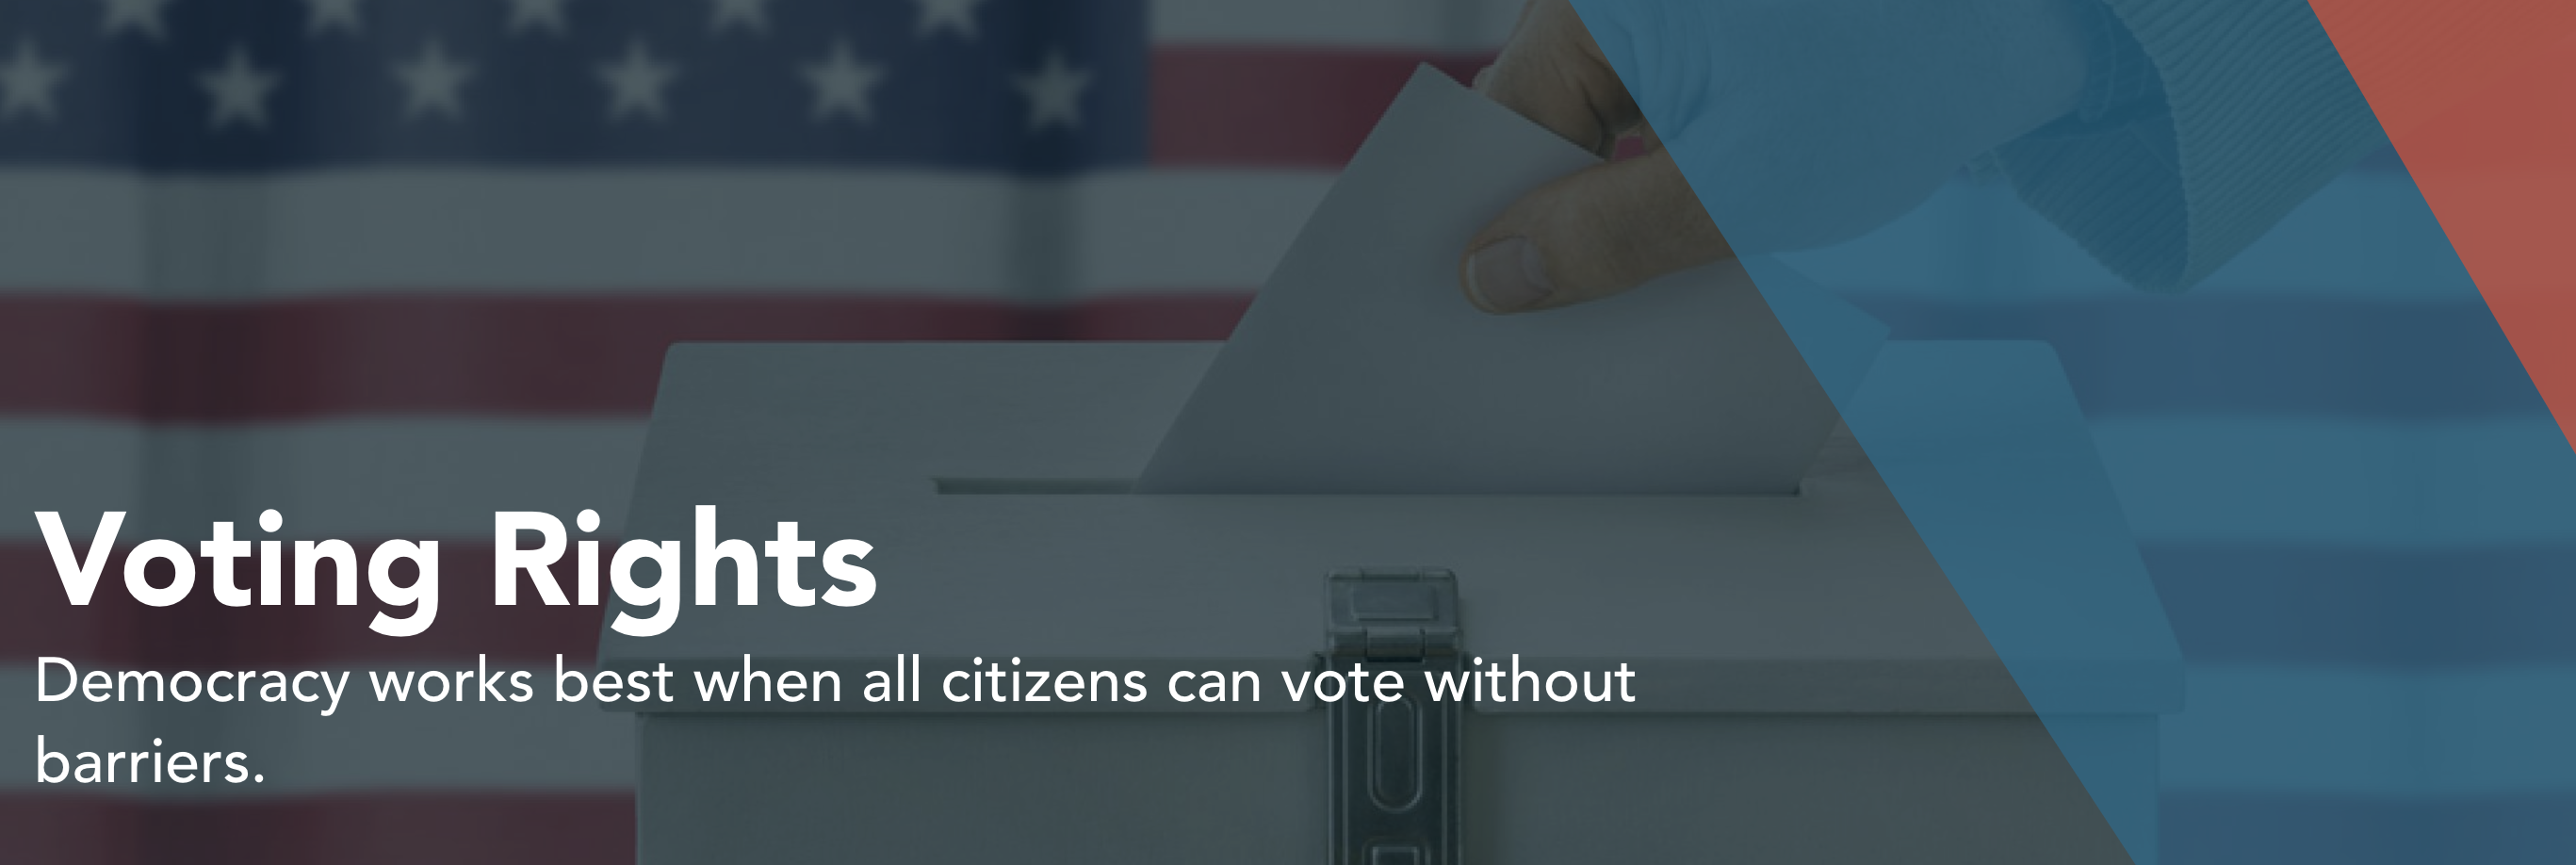 Voting should be accessible for all citizens, no matter where they live, the color of their skin or how much money they make.